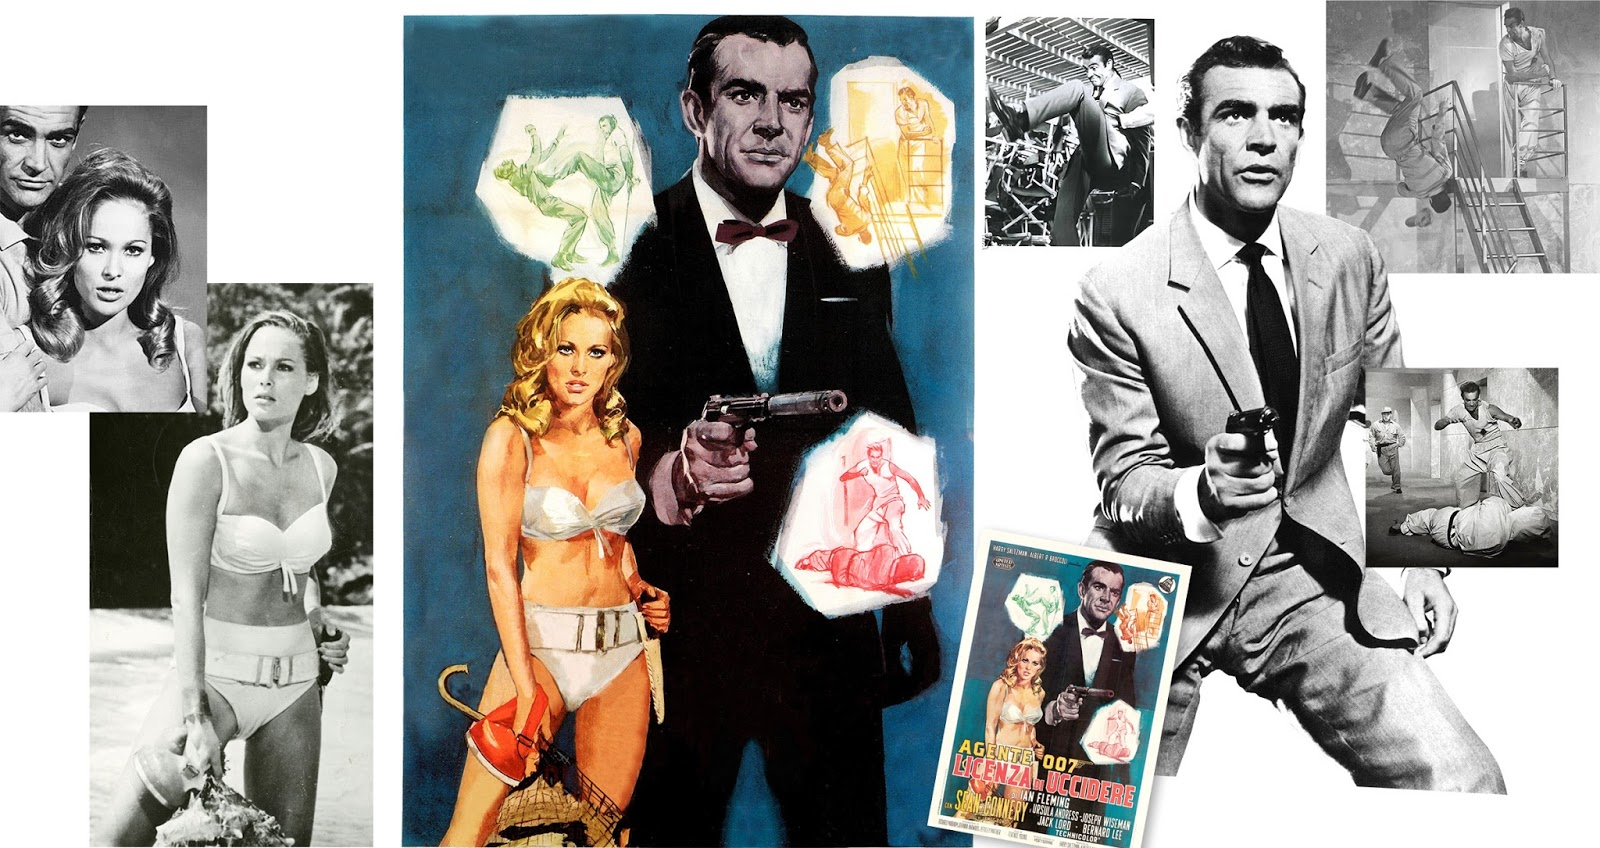 james bond analysis Free james bond papers, essays, and research papers.